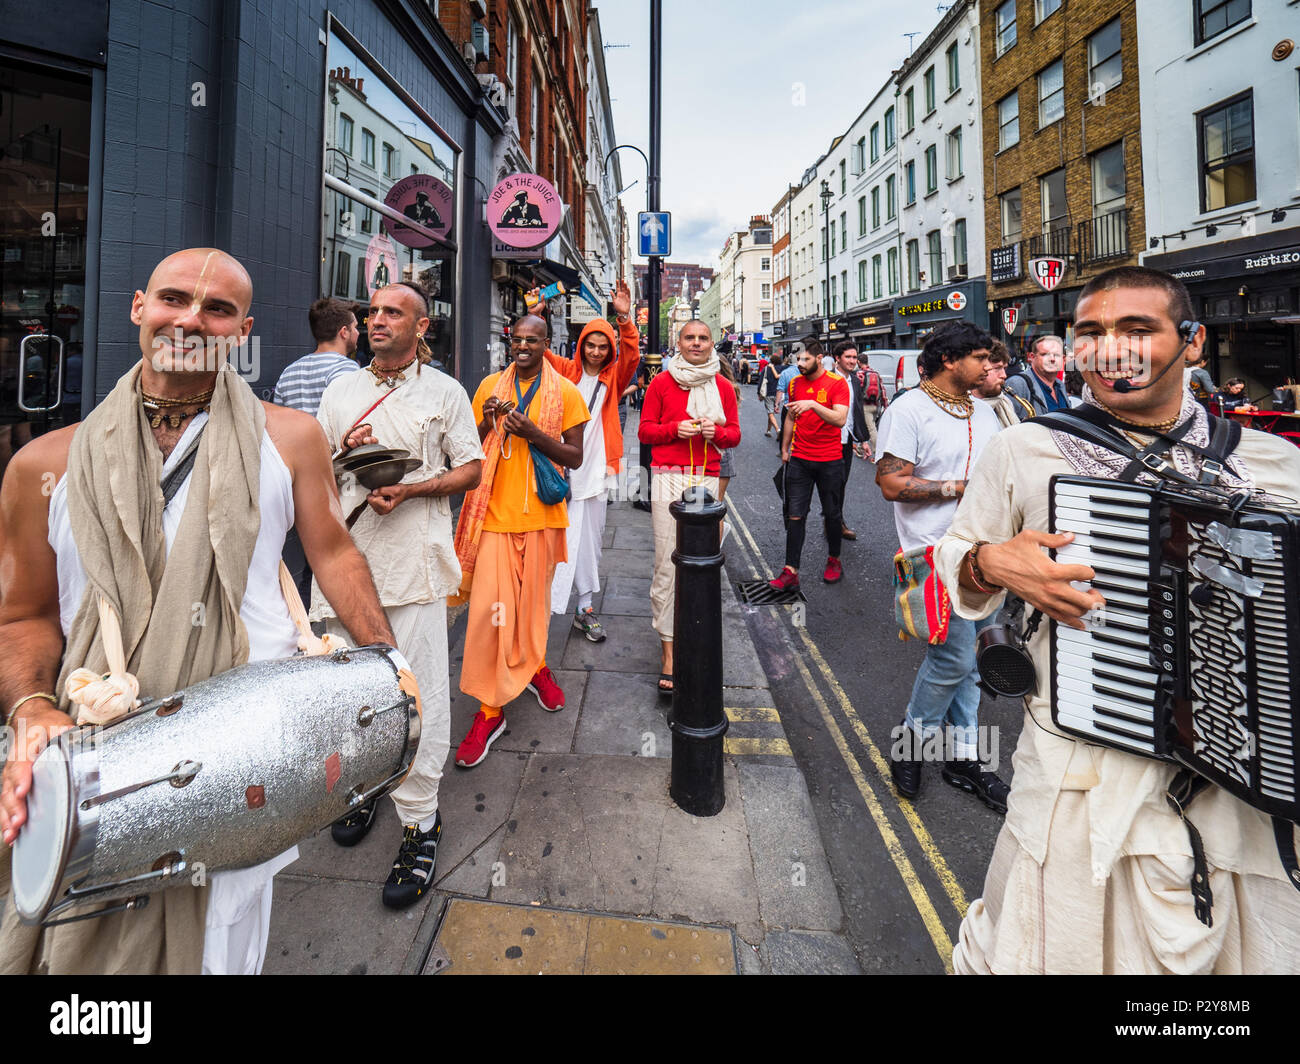 Hare Krishna Chanters move through Old Compton Street in London's Soho district handing out invites for free food at the Radha Krishna Temple. - Stock Image